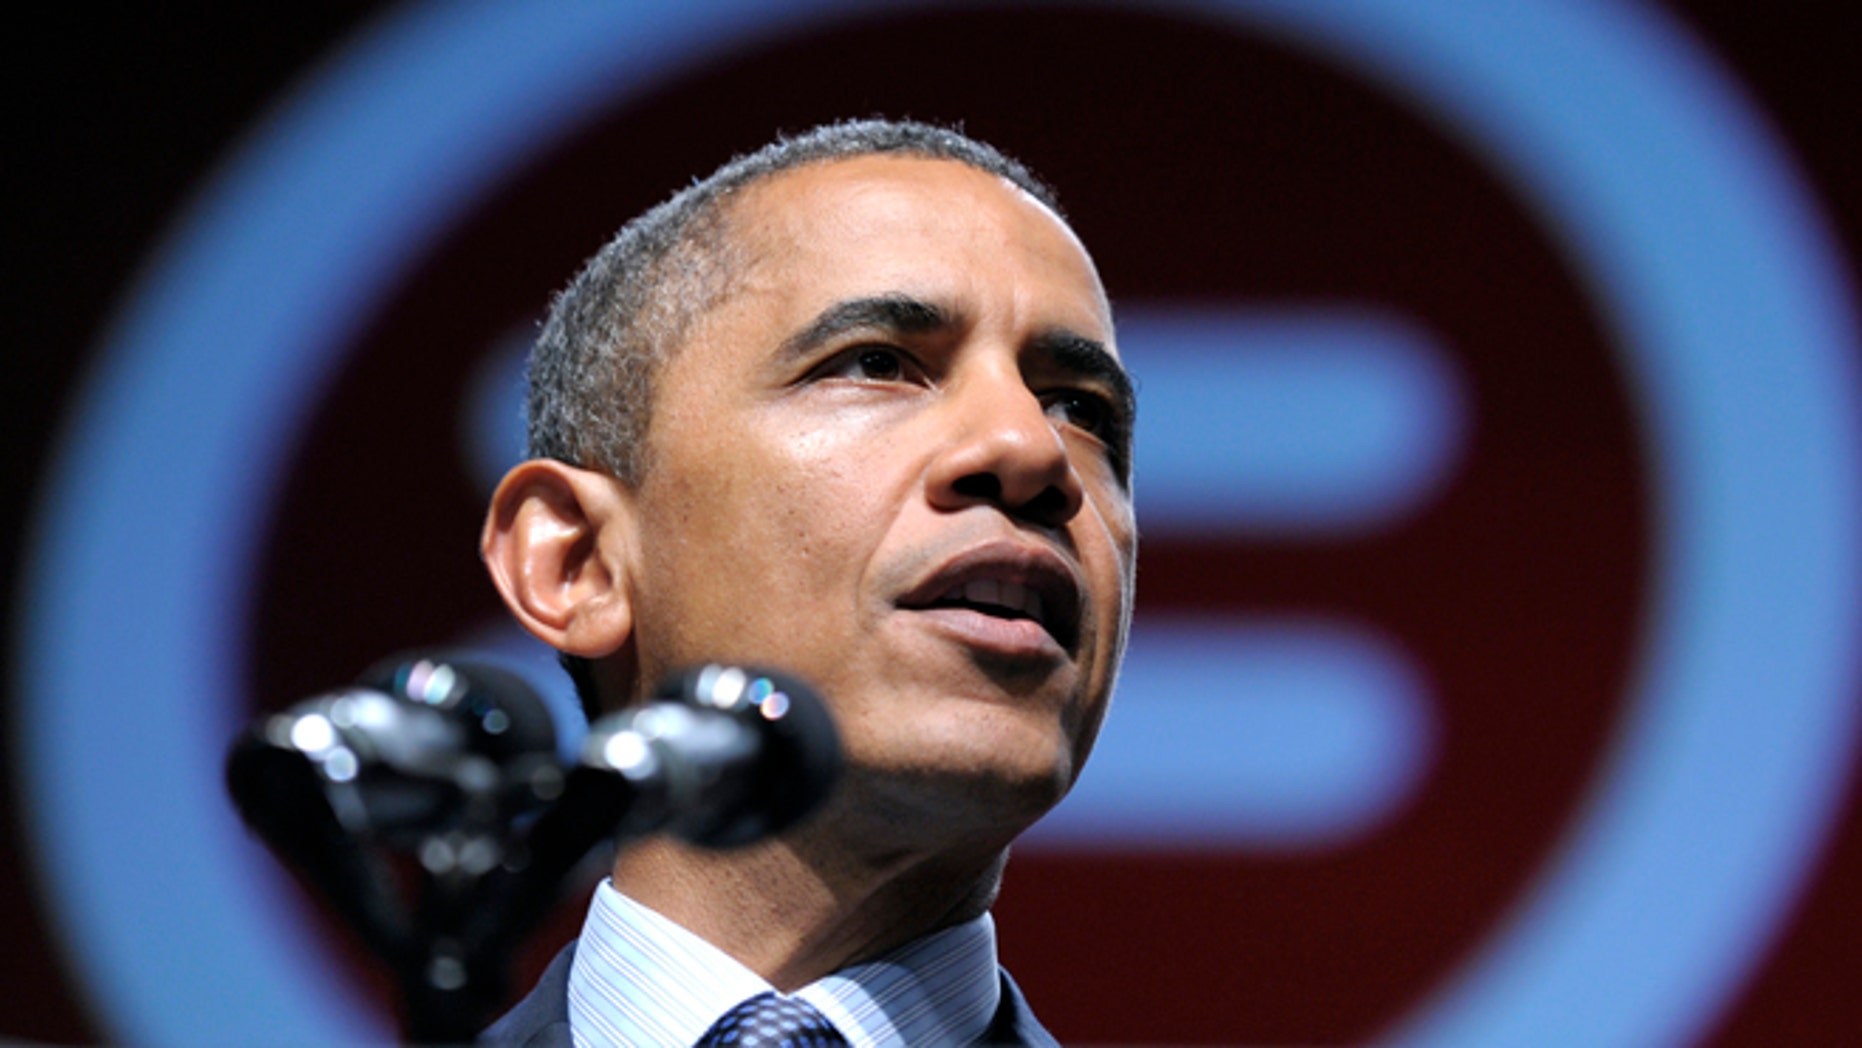 July 25, 2012: President Obama addresses the National Urban League convention in New Orleans.